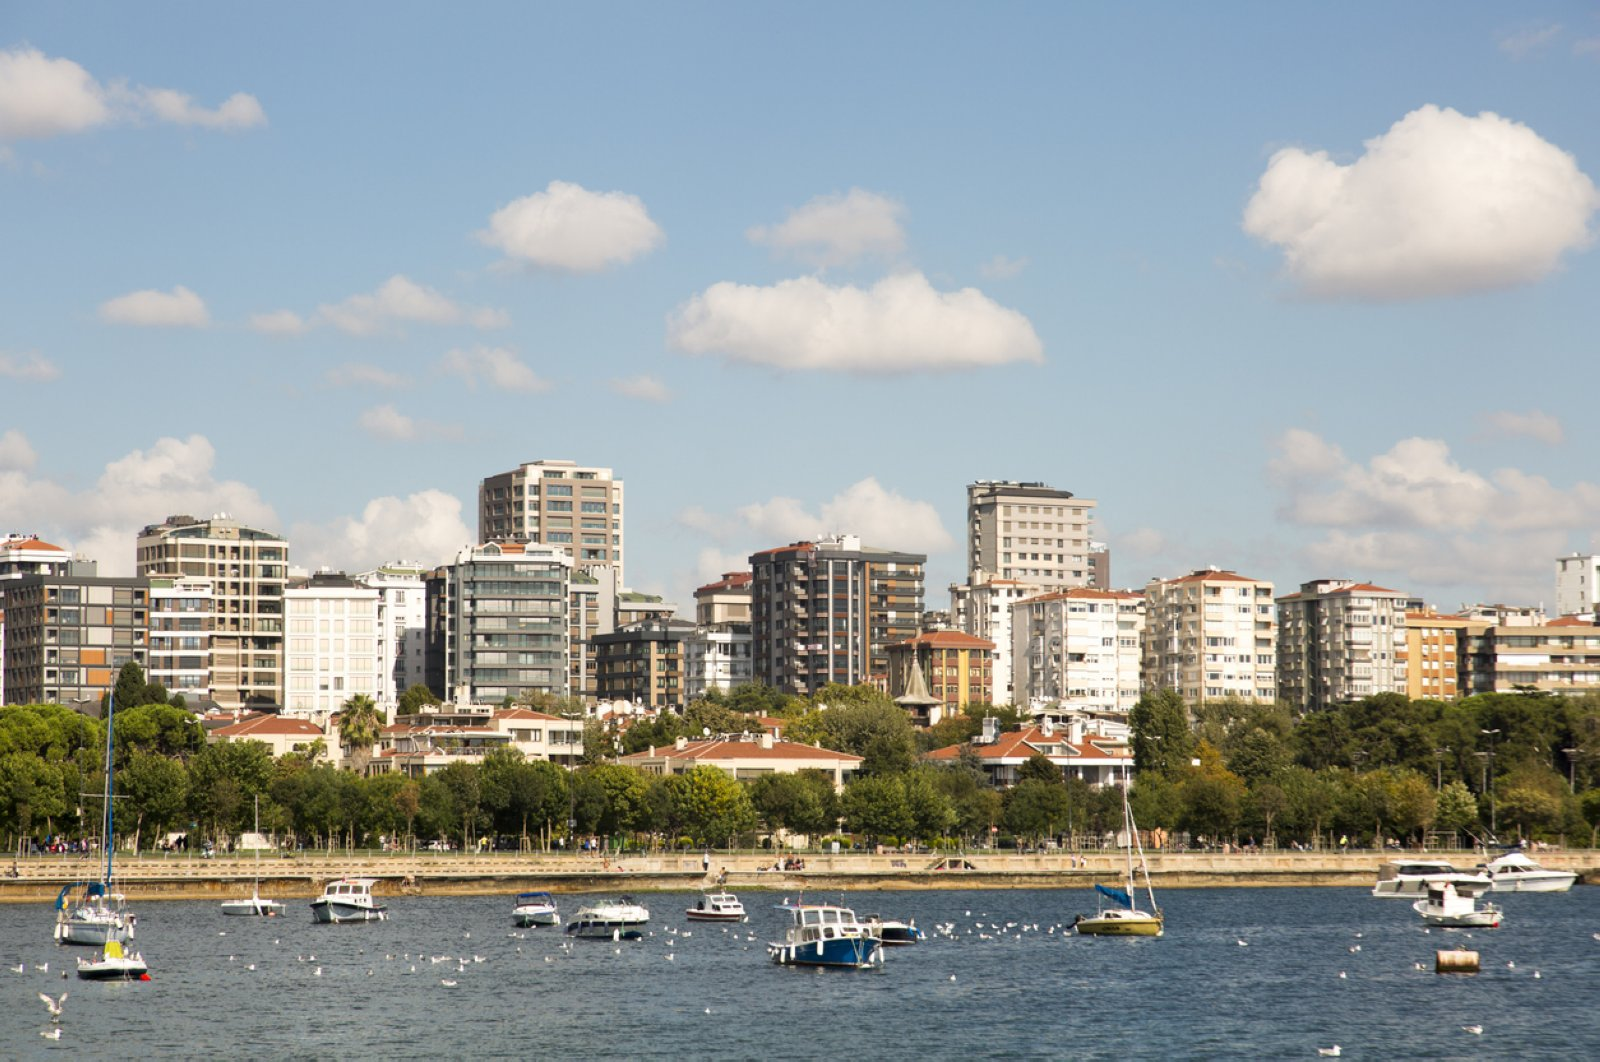 With clouds and blue sky in the background, apartment buildings speckle the coastline of Kadıköy, Istanbul, Oct. 9, 2019. (iStock Photo)